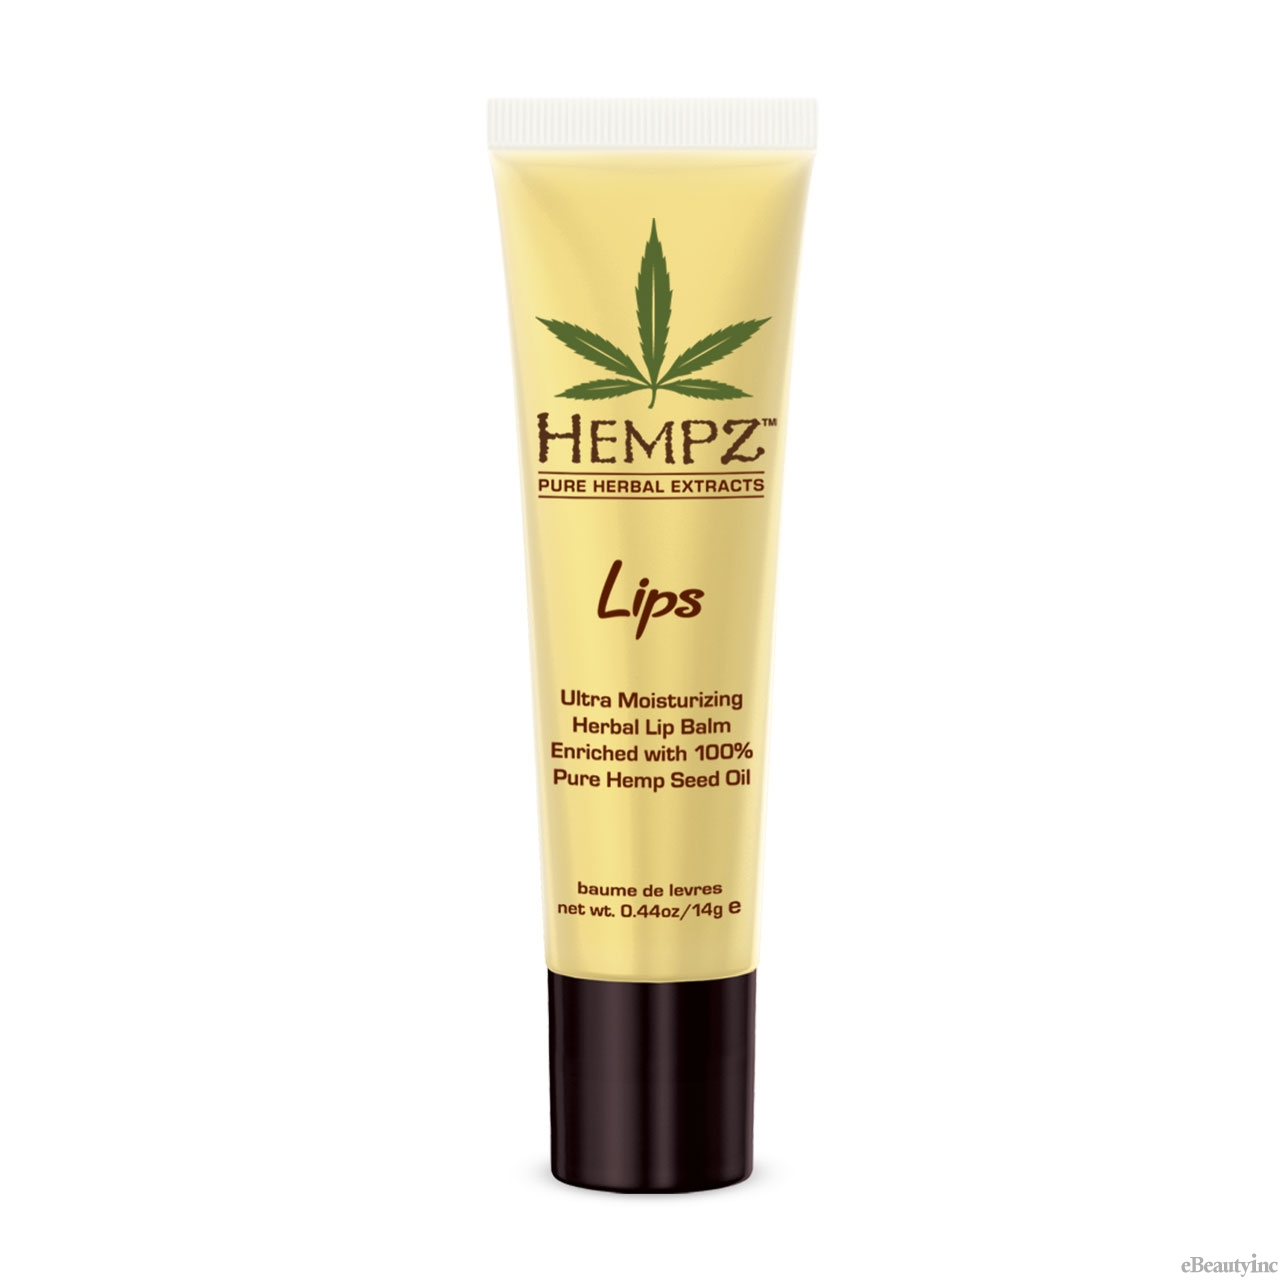 Hempz Ultra Moisturizing Herbal Lip Balm - 0.5oz